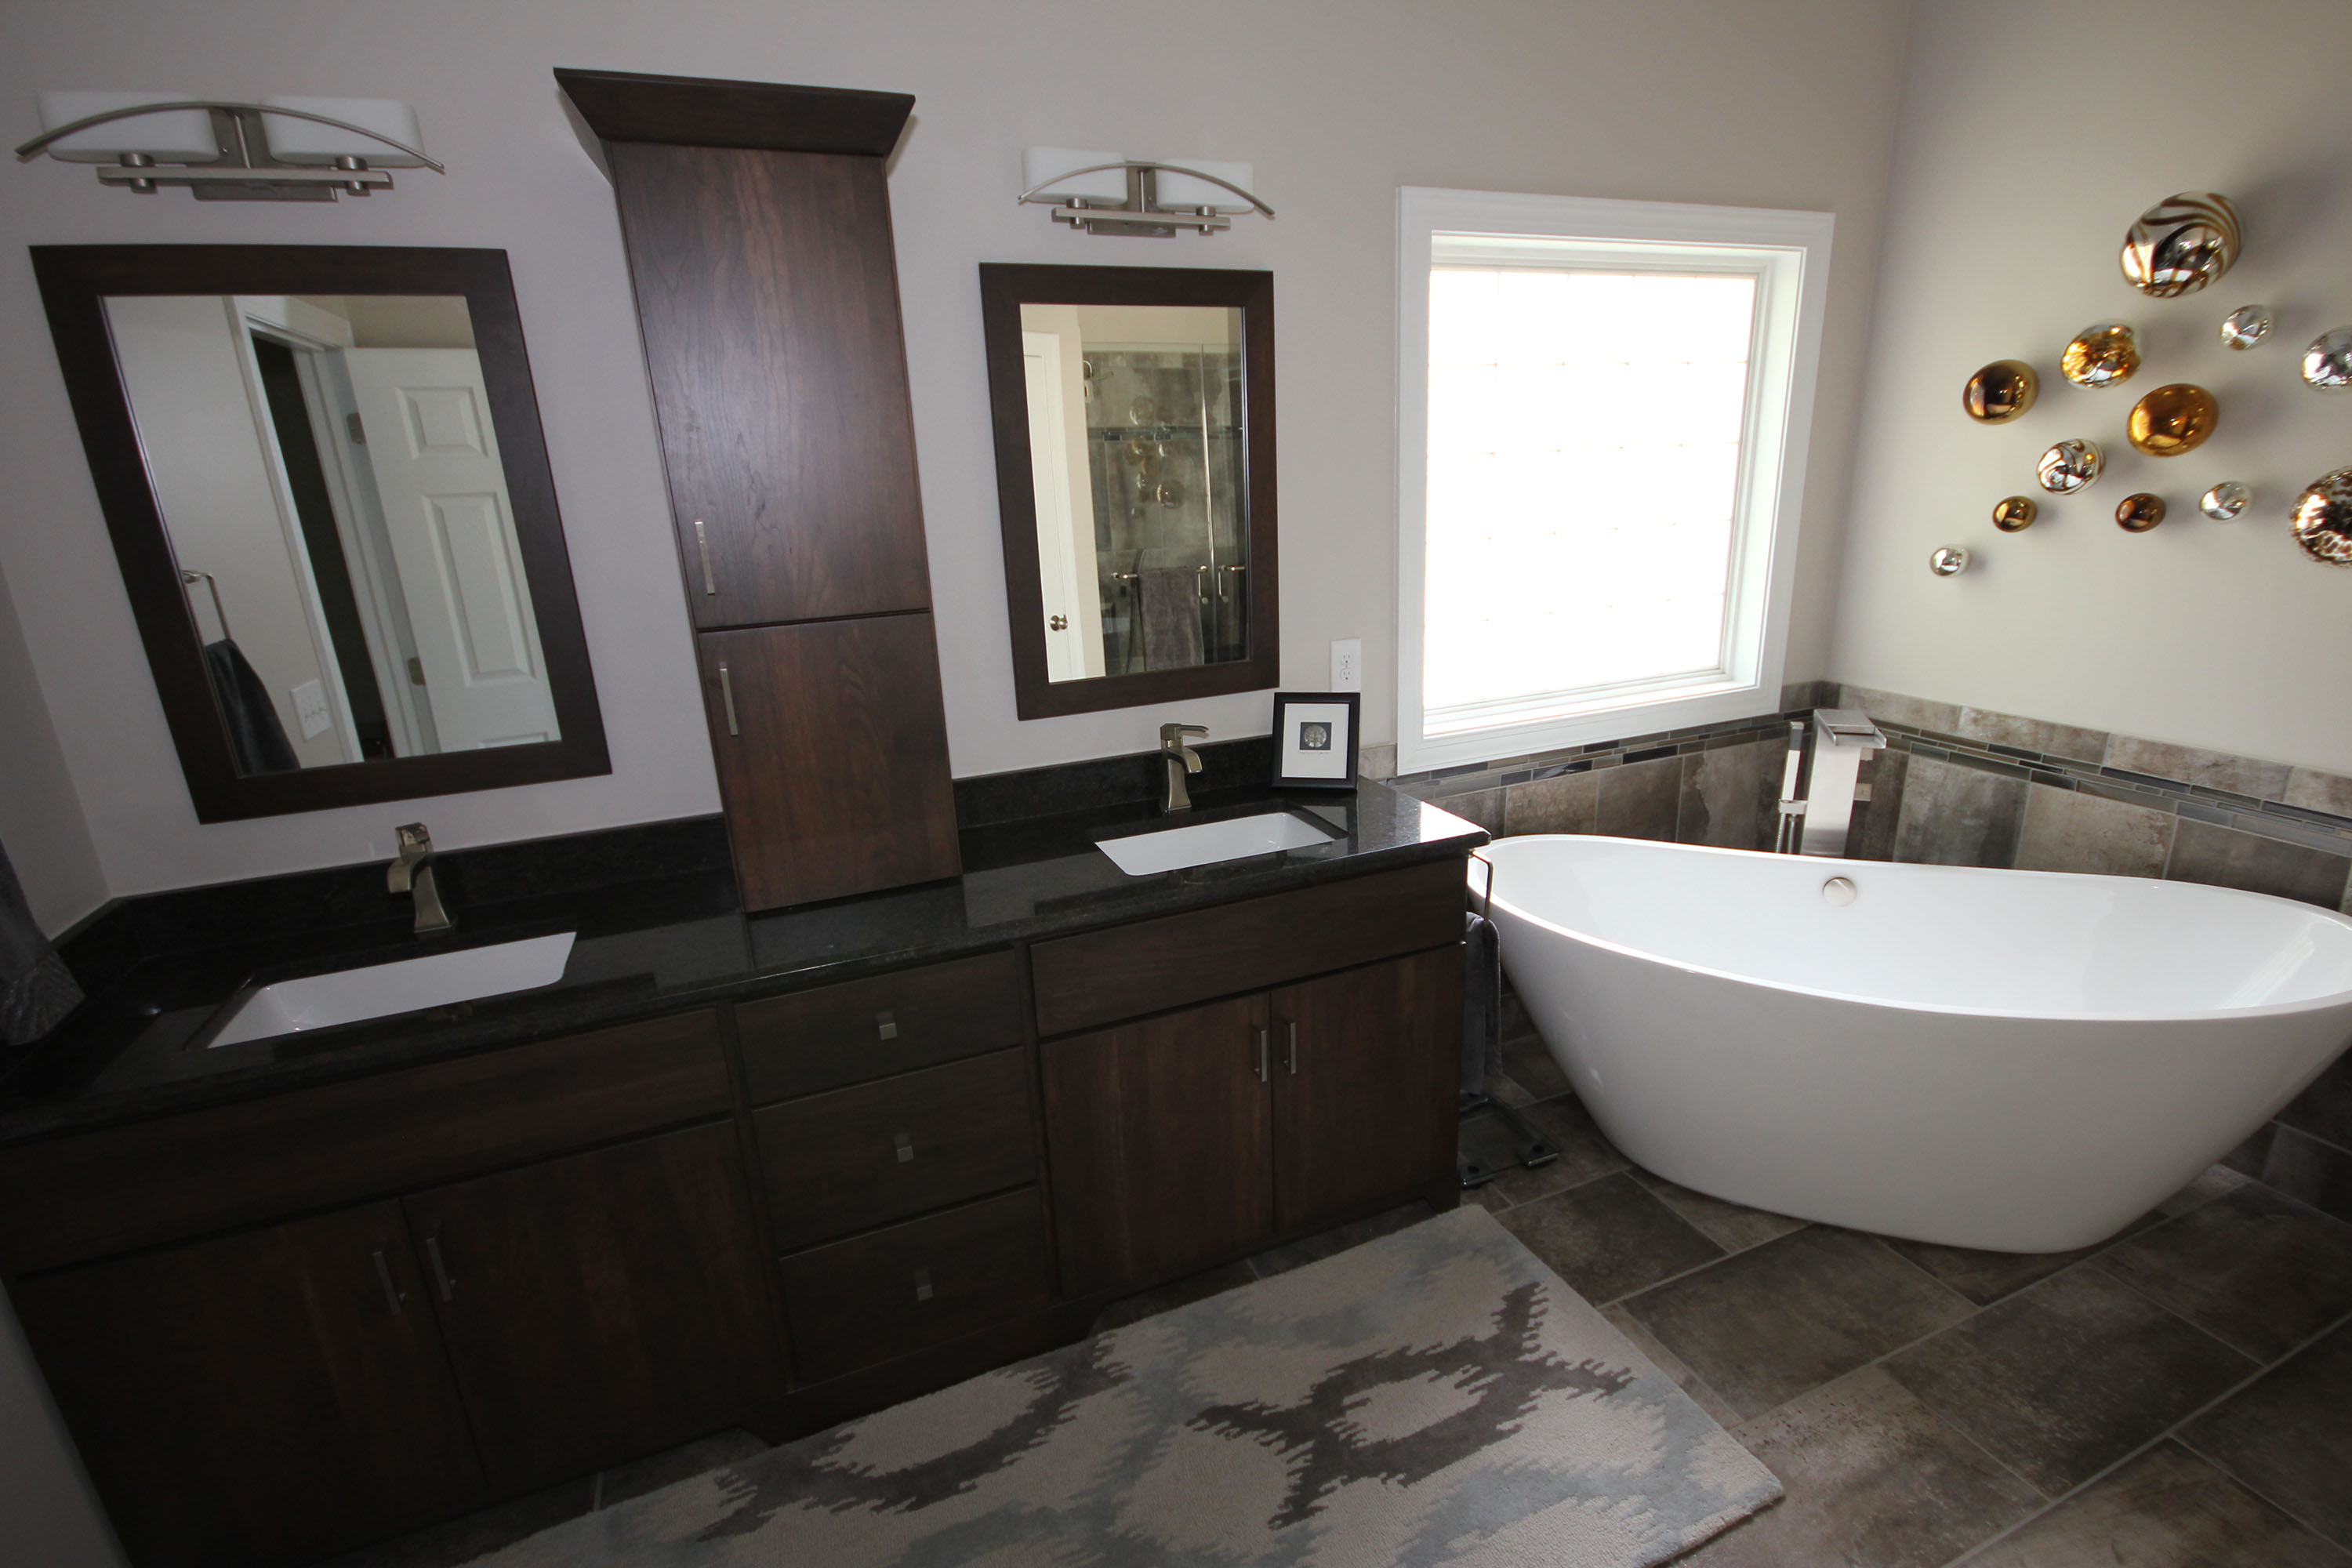 freestanding bathtubs by cary bathroom remodeling portofino tile - Bathroom Remodel Kingsport Tn